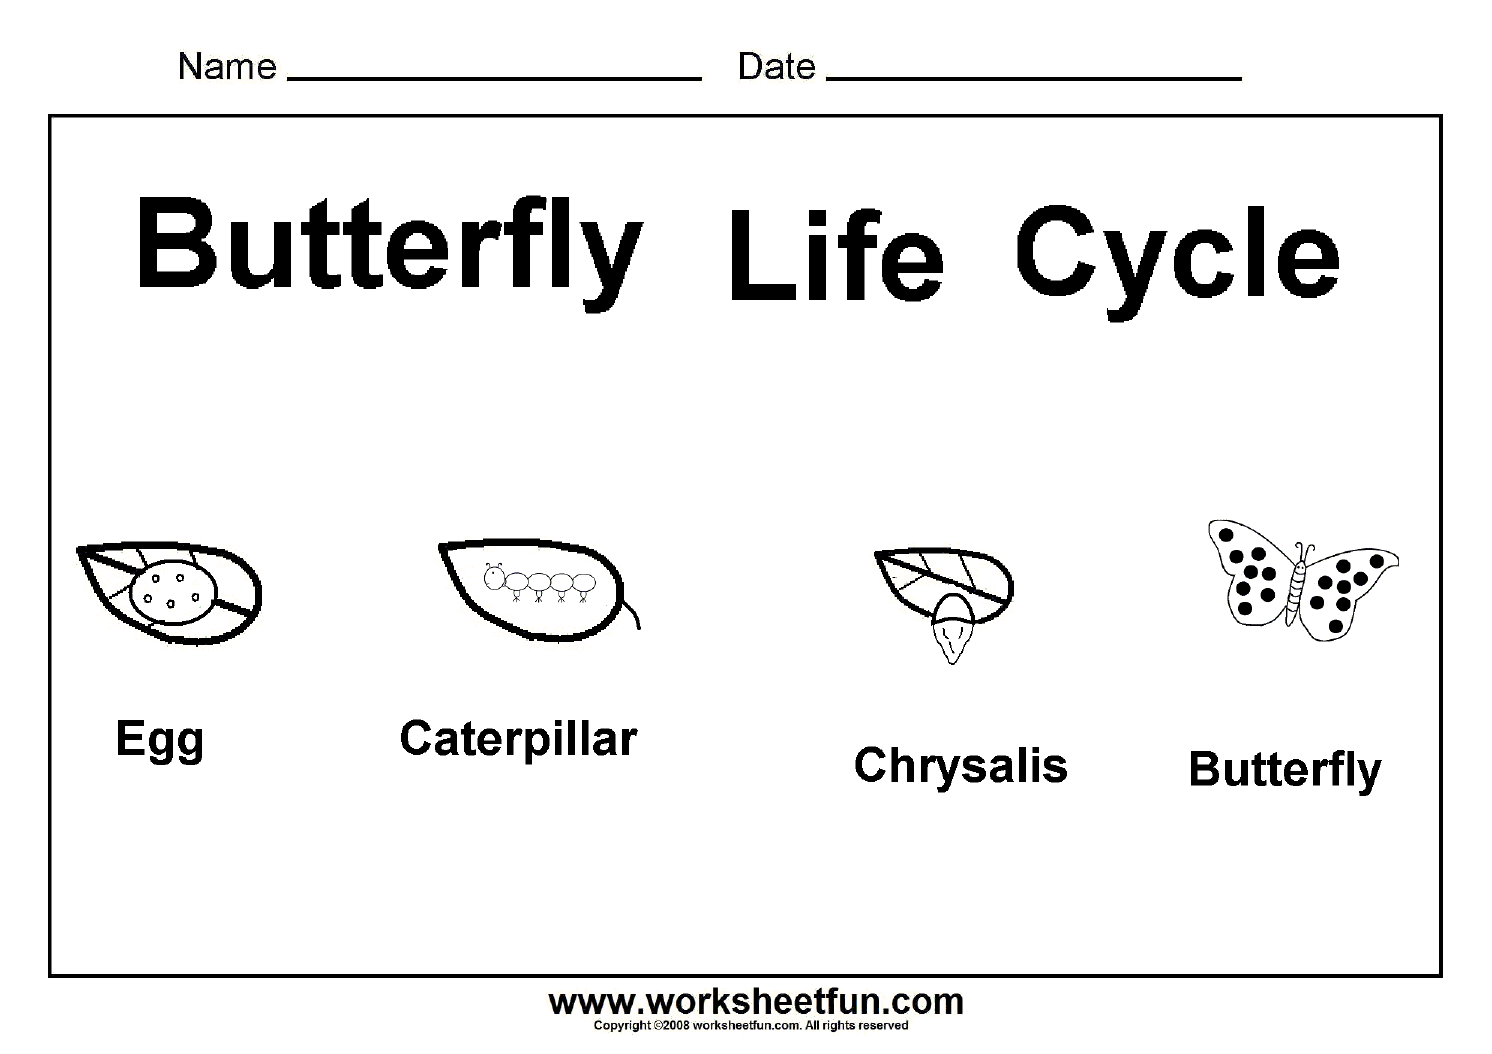 Butterfly Life Cycle One Worksheet Free Printable